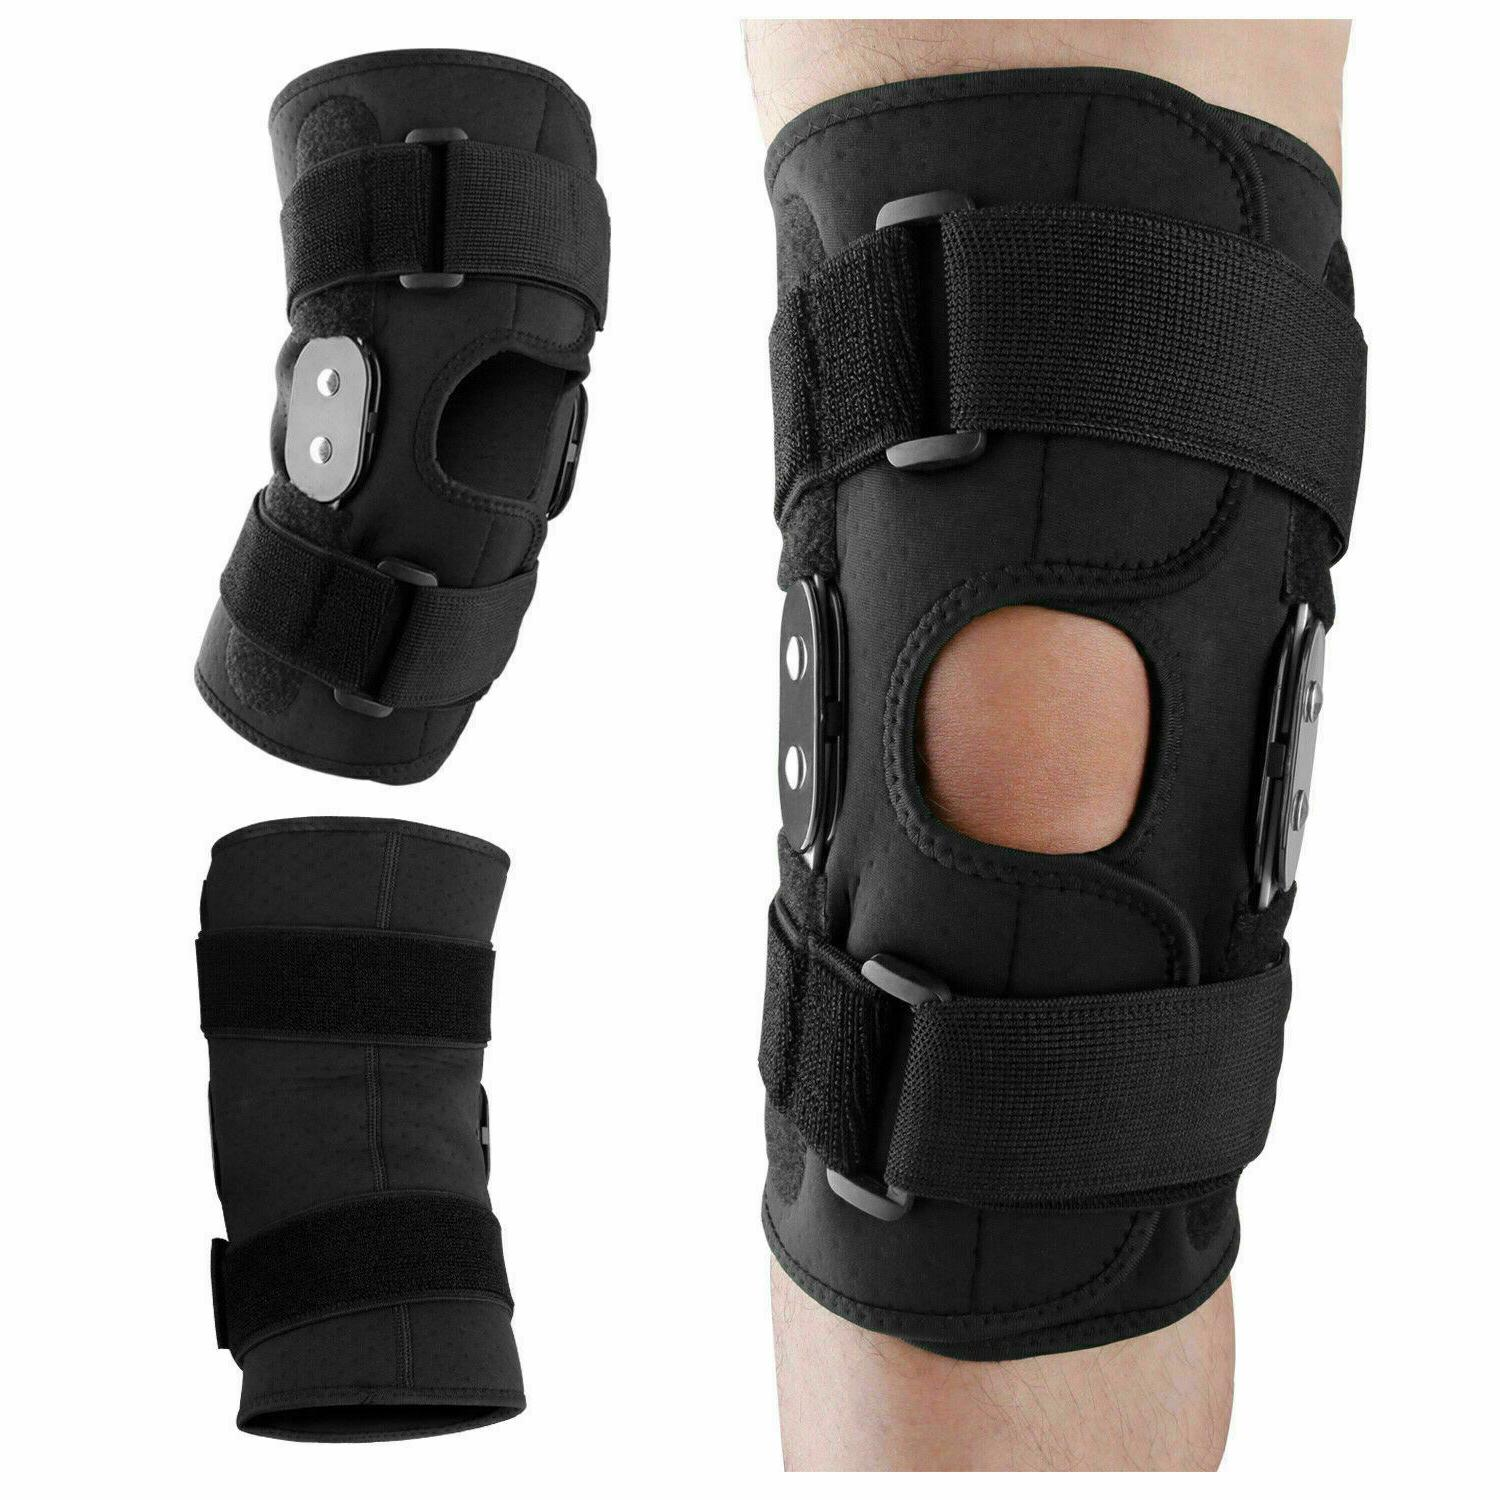 Adjustable Hinged Support Stabilizer Sleeve